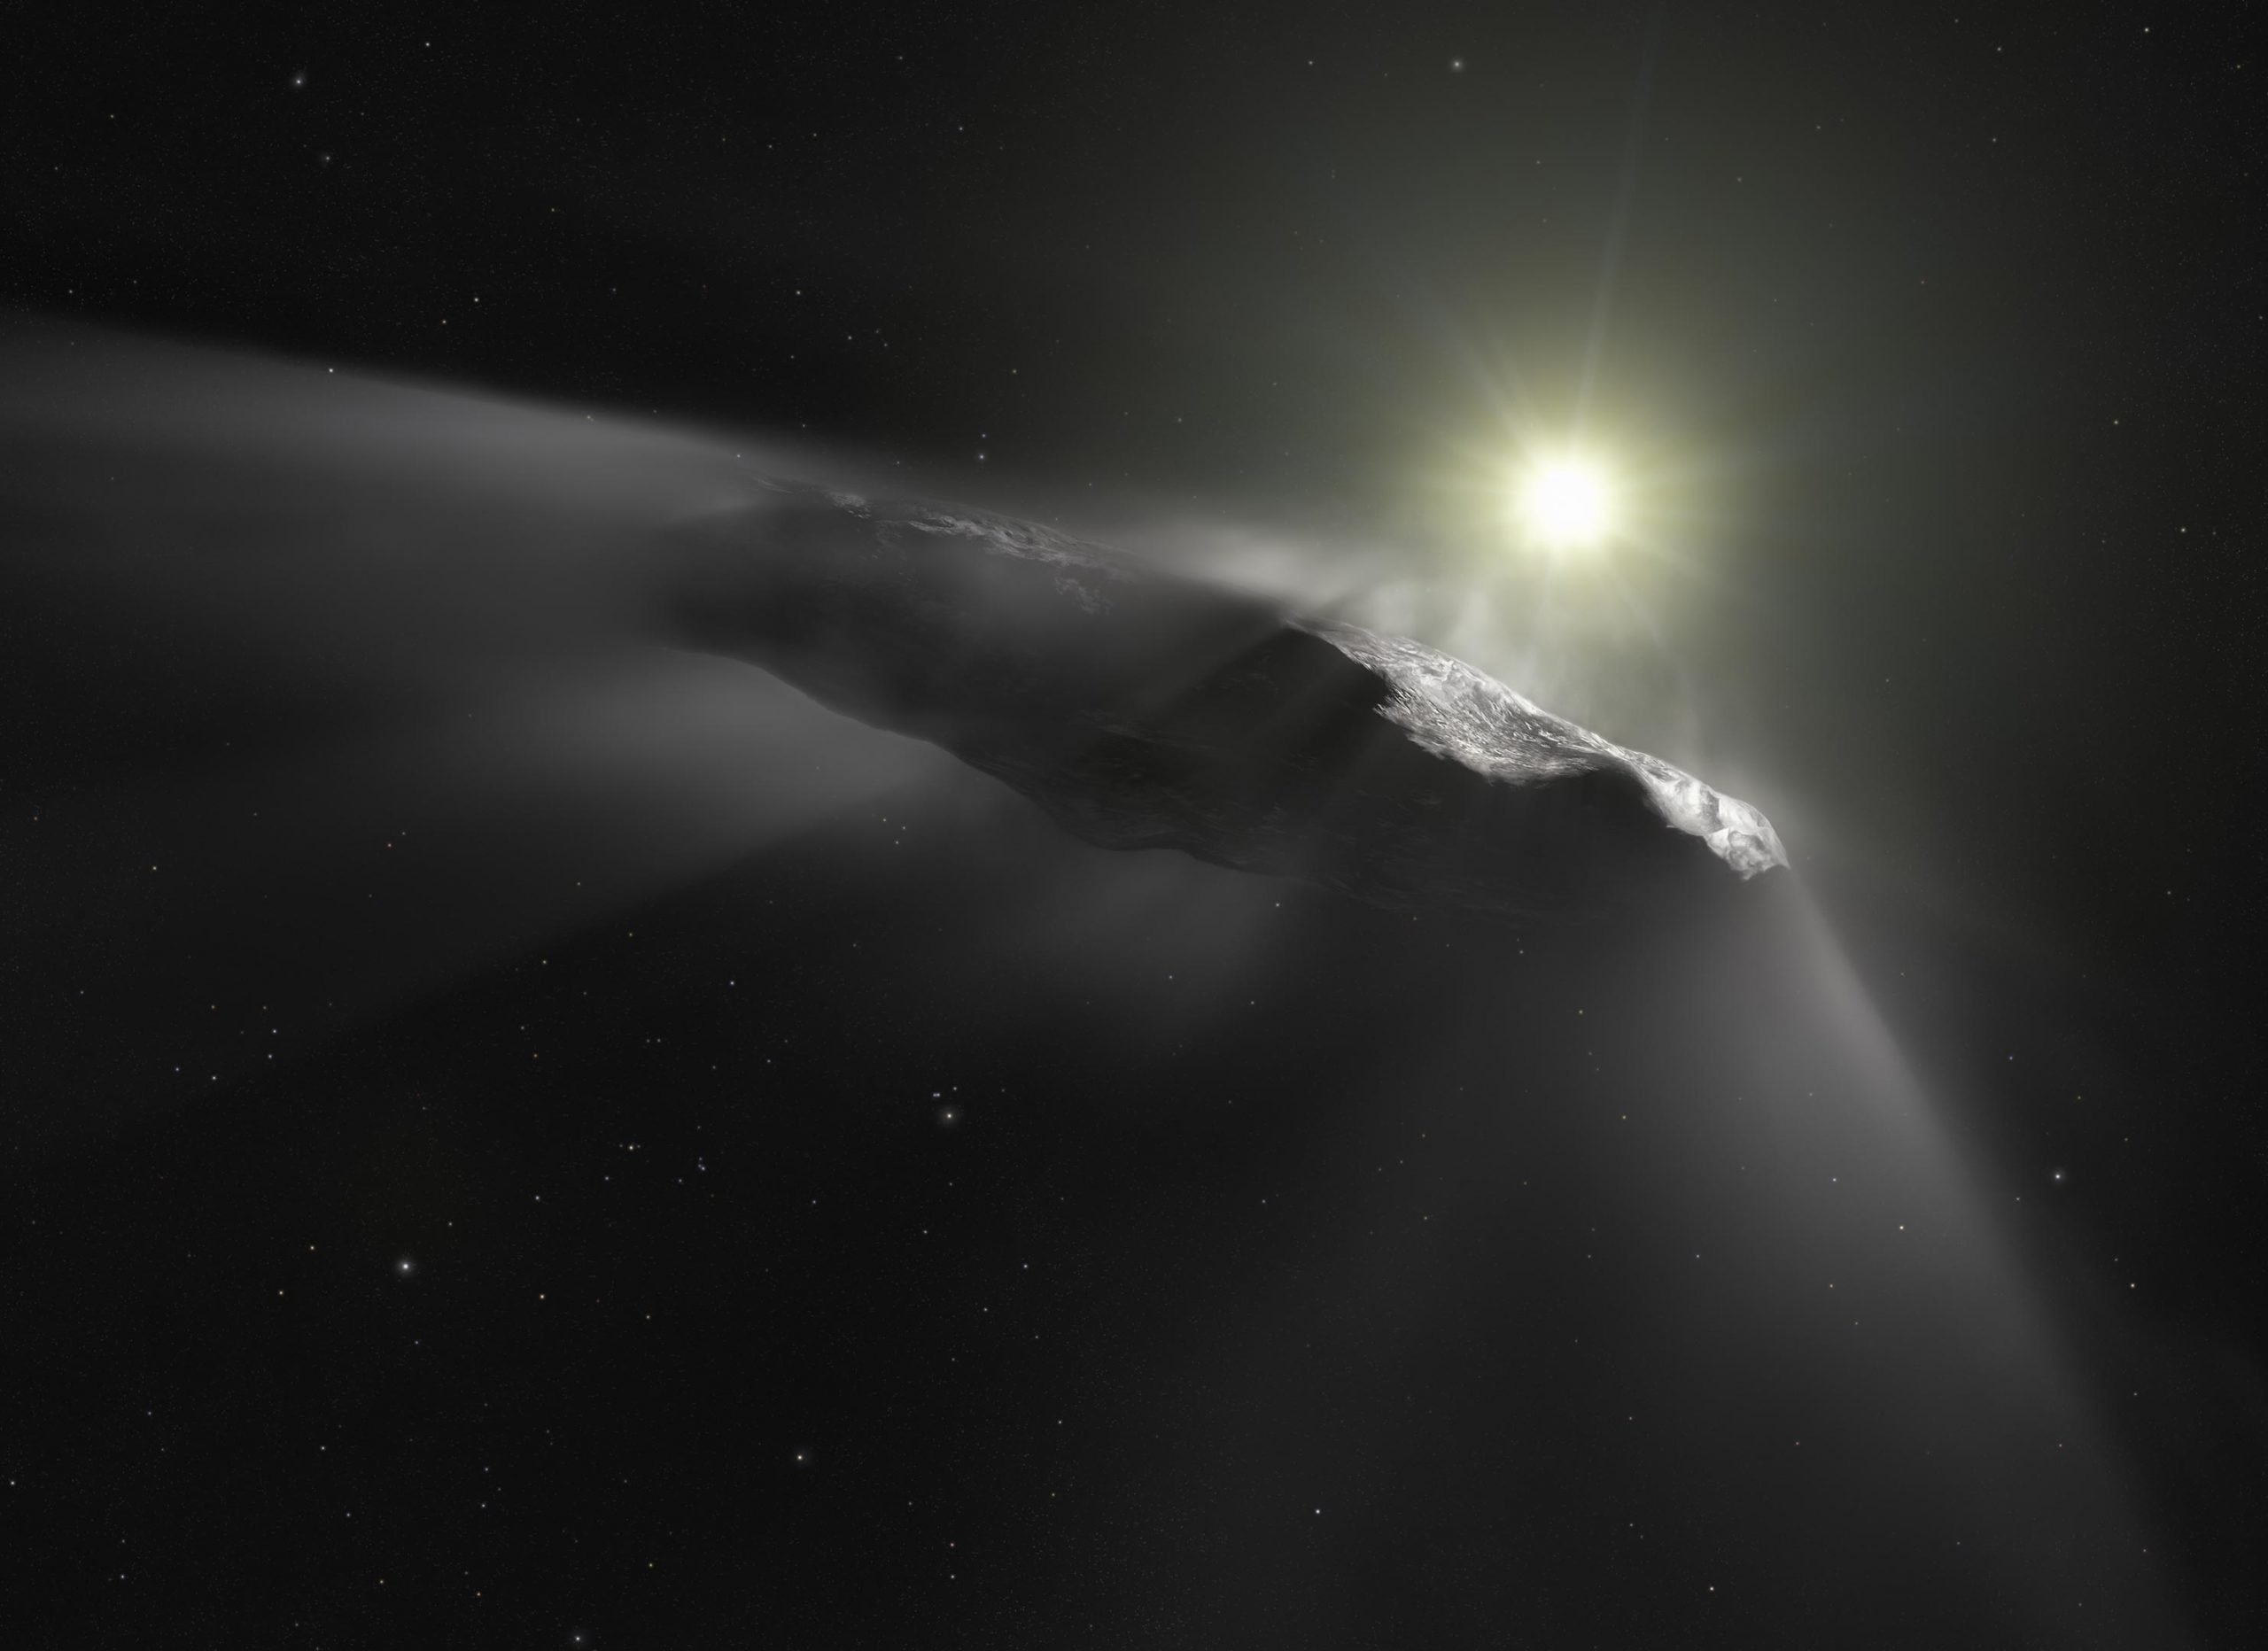 A different Twist in the Discussion Over the Origins and Composition of Mysterious Interstellar Object 'Oumuamua